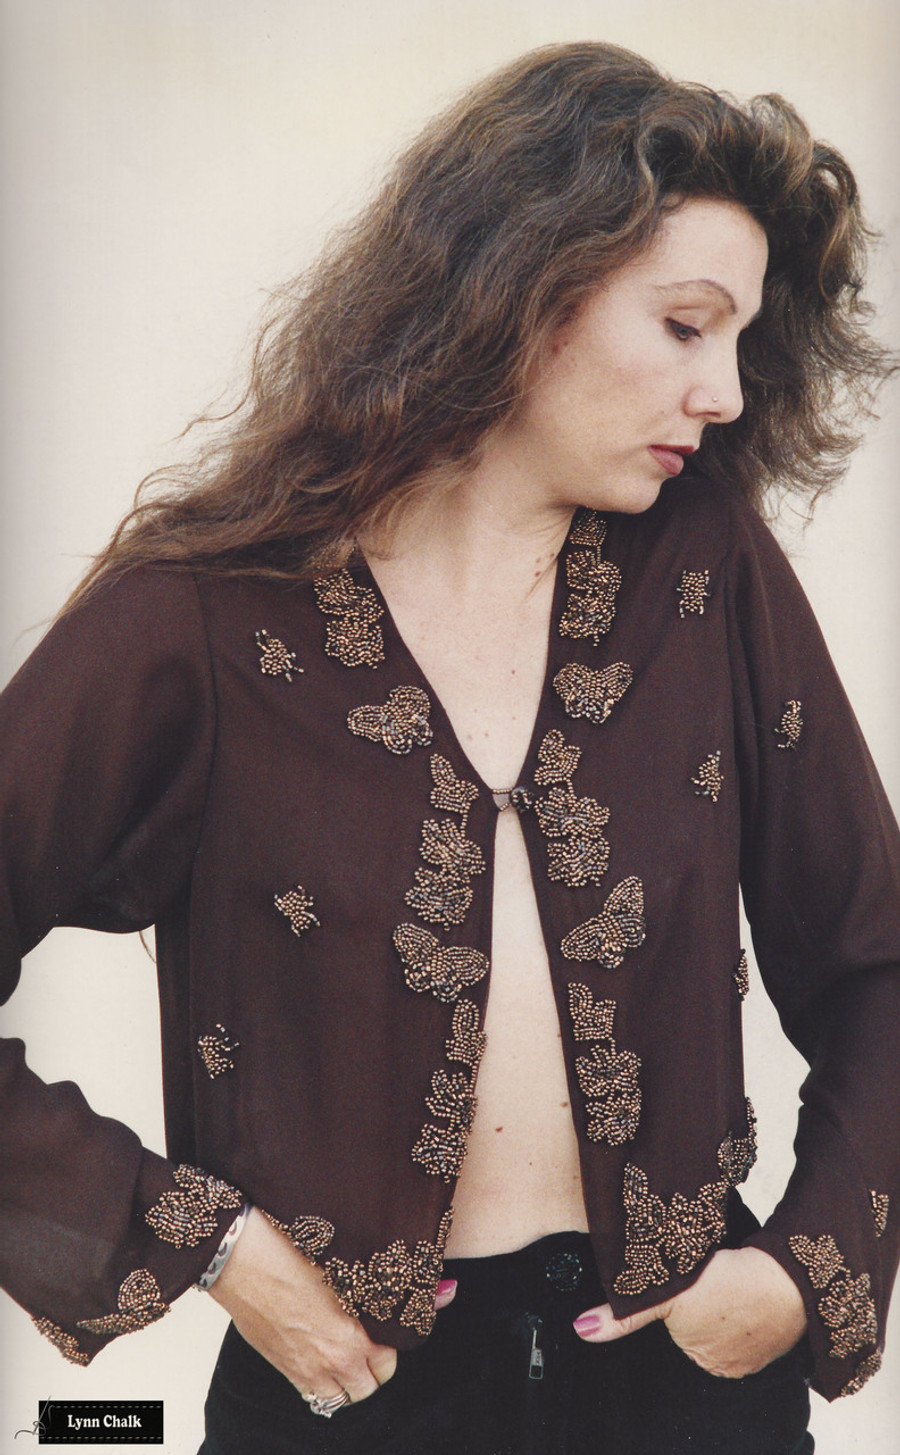 Chocolate Brown Silk Chiffon Top with Gold Hand Beaded Butterflies, Flowers and Spiders by Lynn Chalk